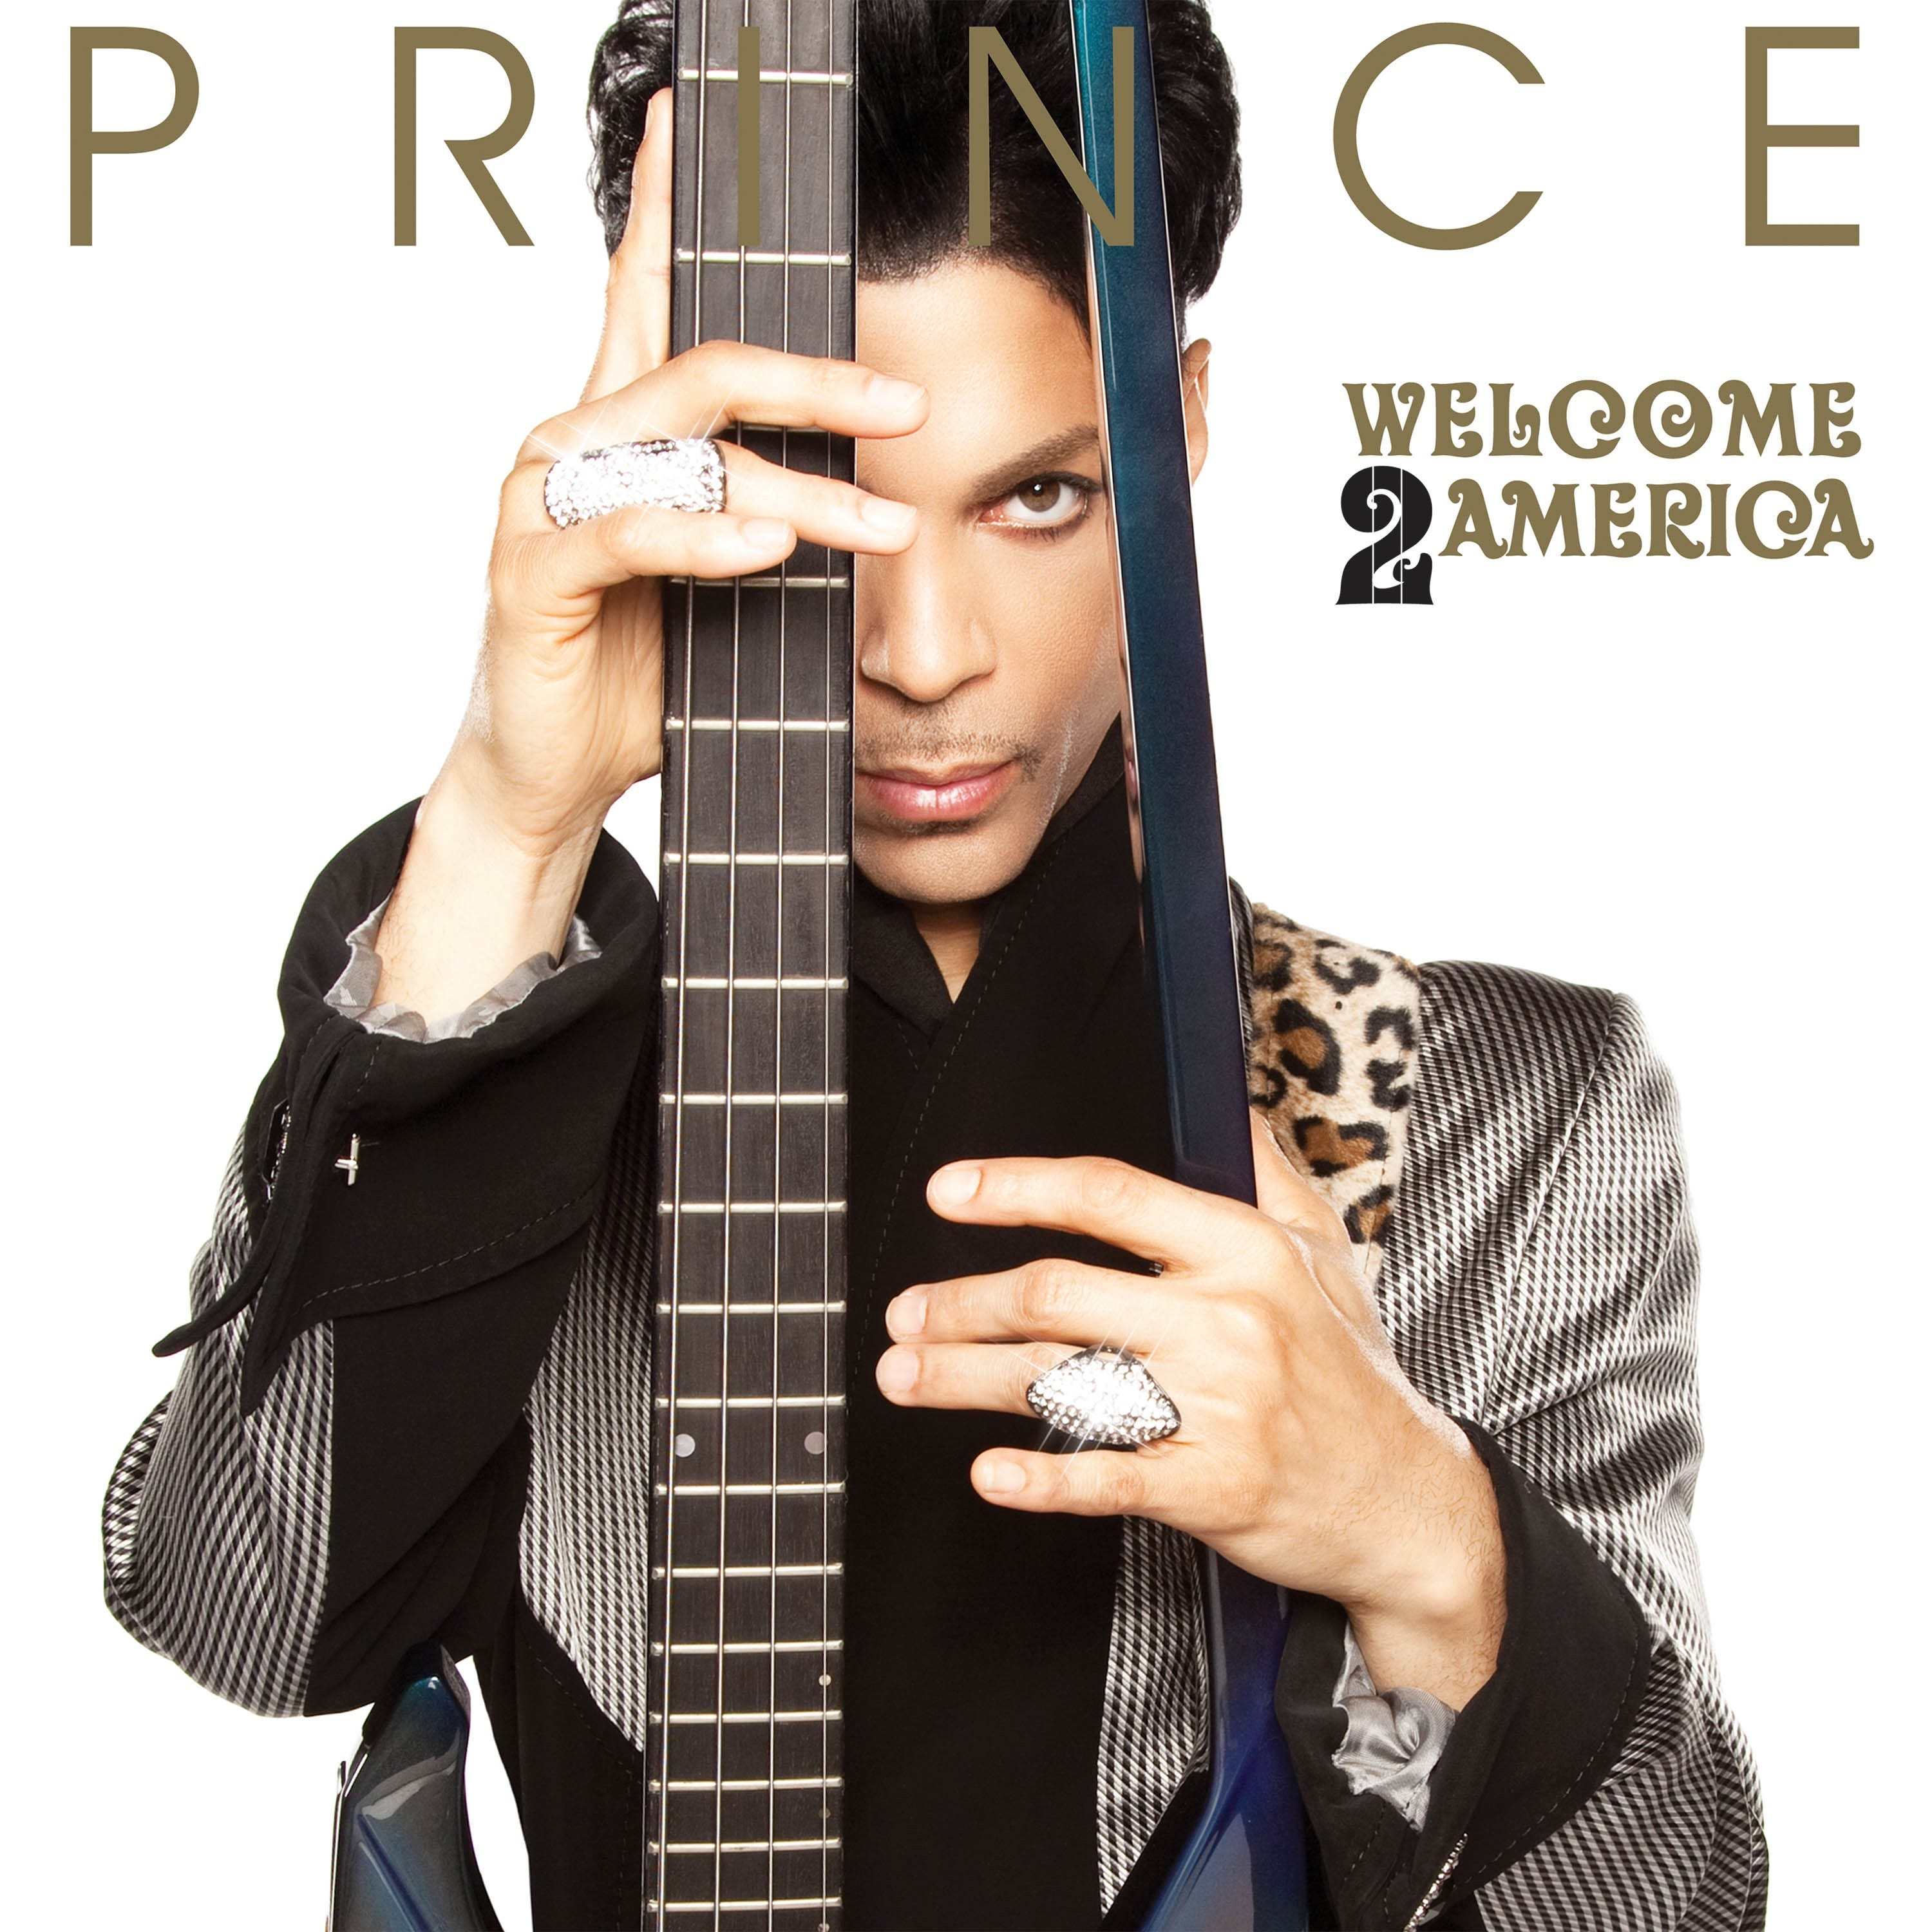 Prince's Unreleased Album 'Welcome 2 America' Arriving July 30th, More Than a Decade After it Was Recorded